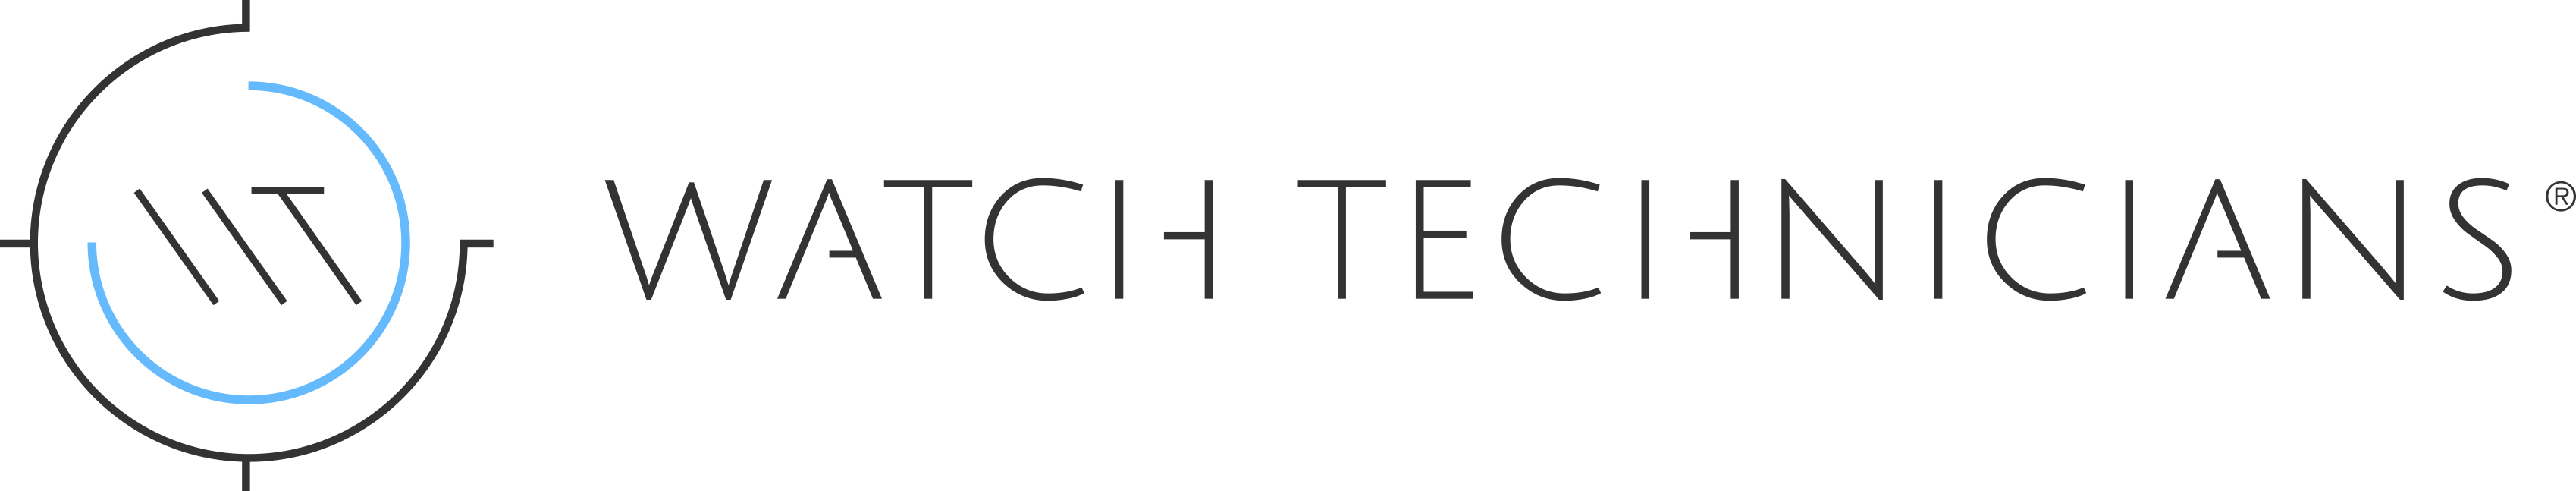 Watch Technicians logo